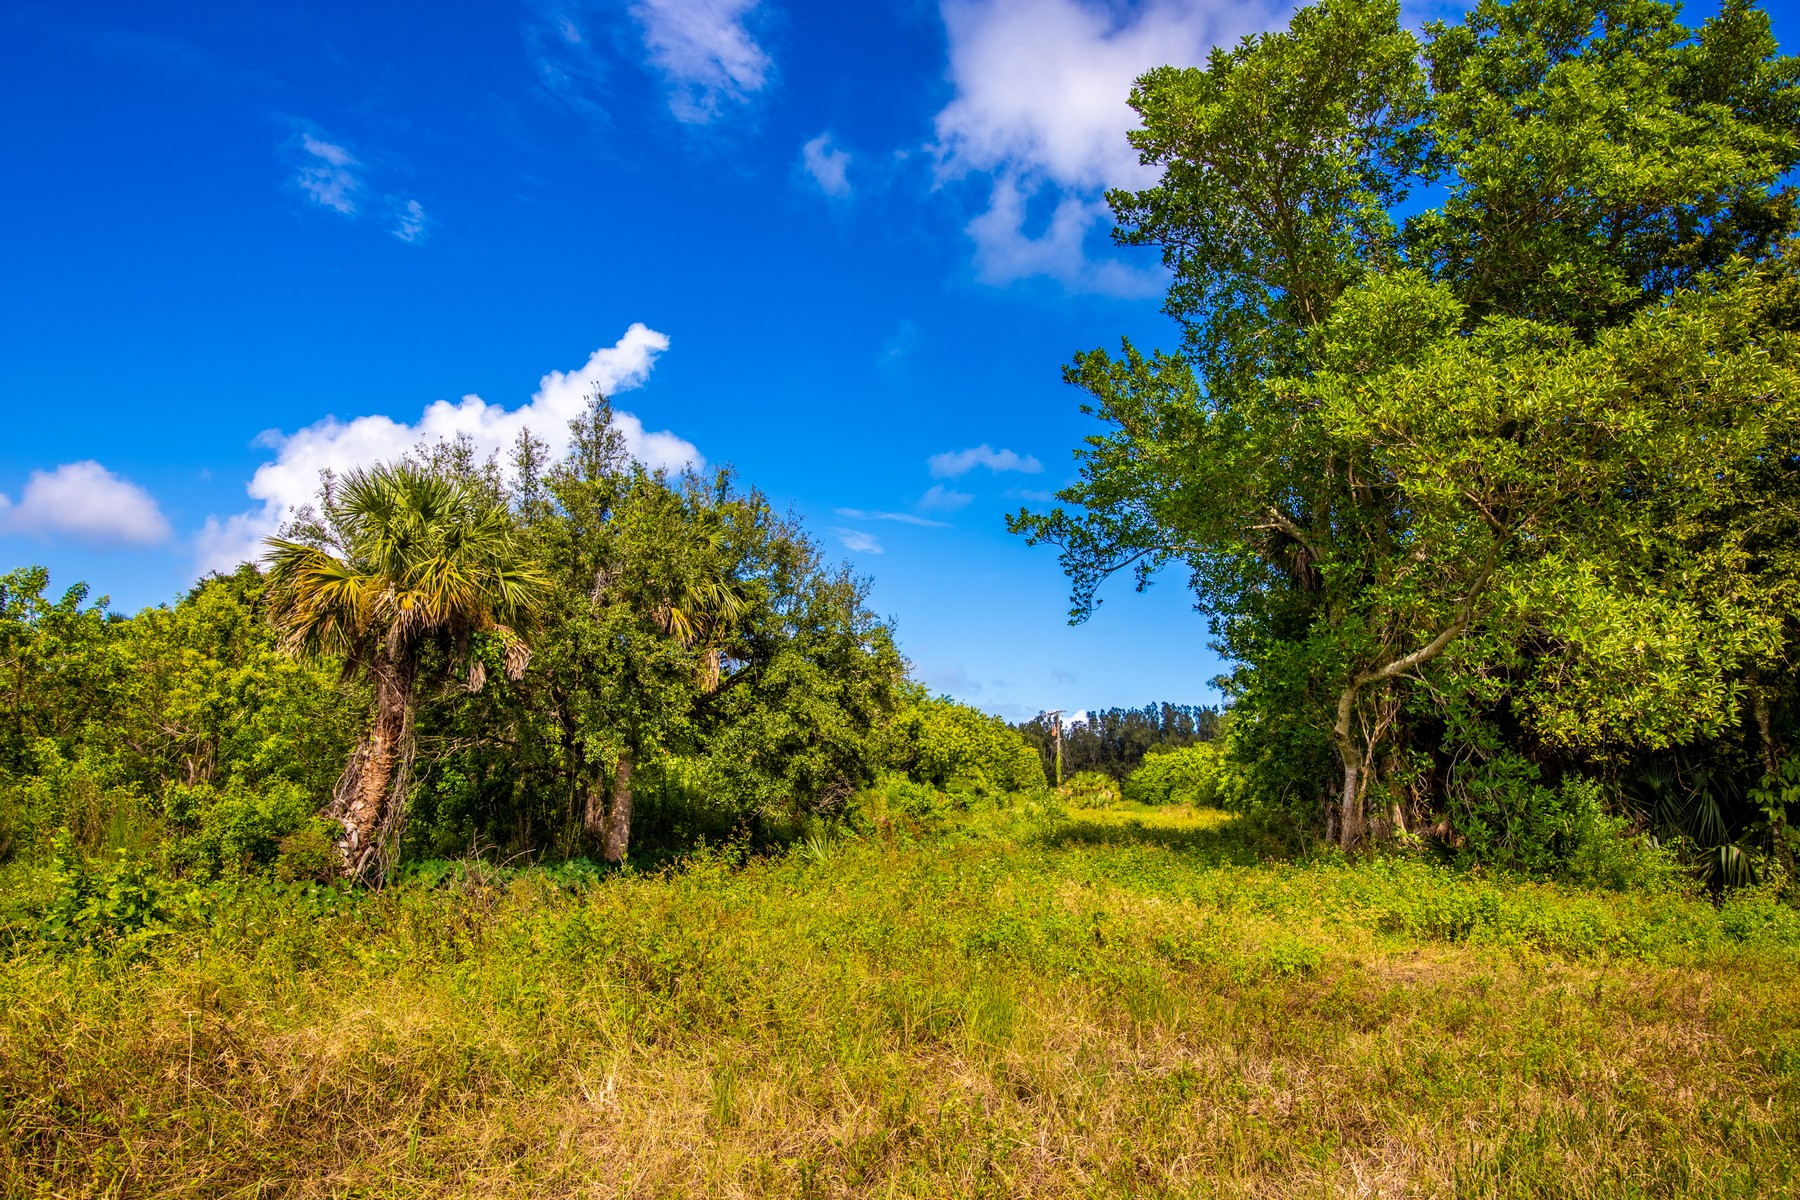 Land for Sale at Twenty Three Acres by Wabasso Causeway Area Near Indian River 4790 87th Street Sebastian, Florida 32958 United States